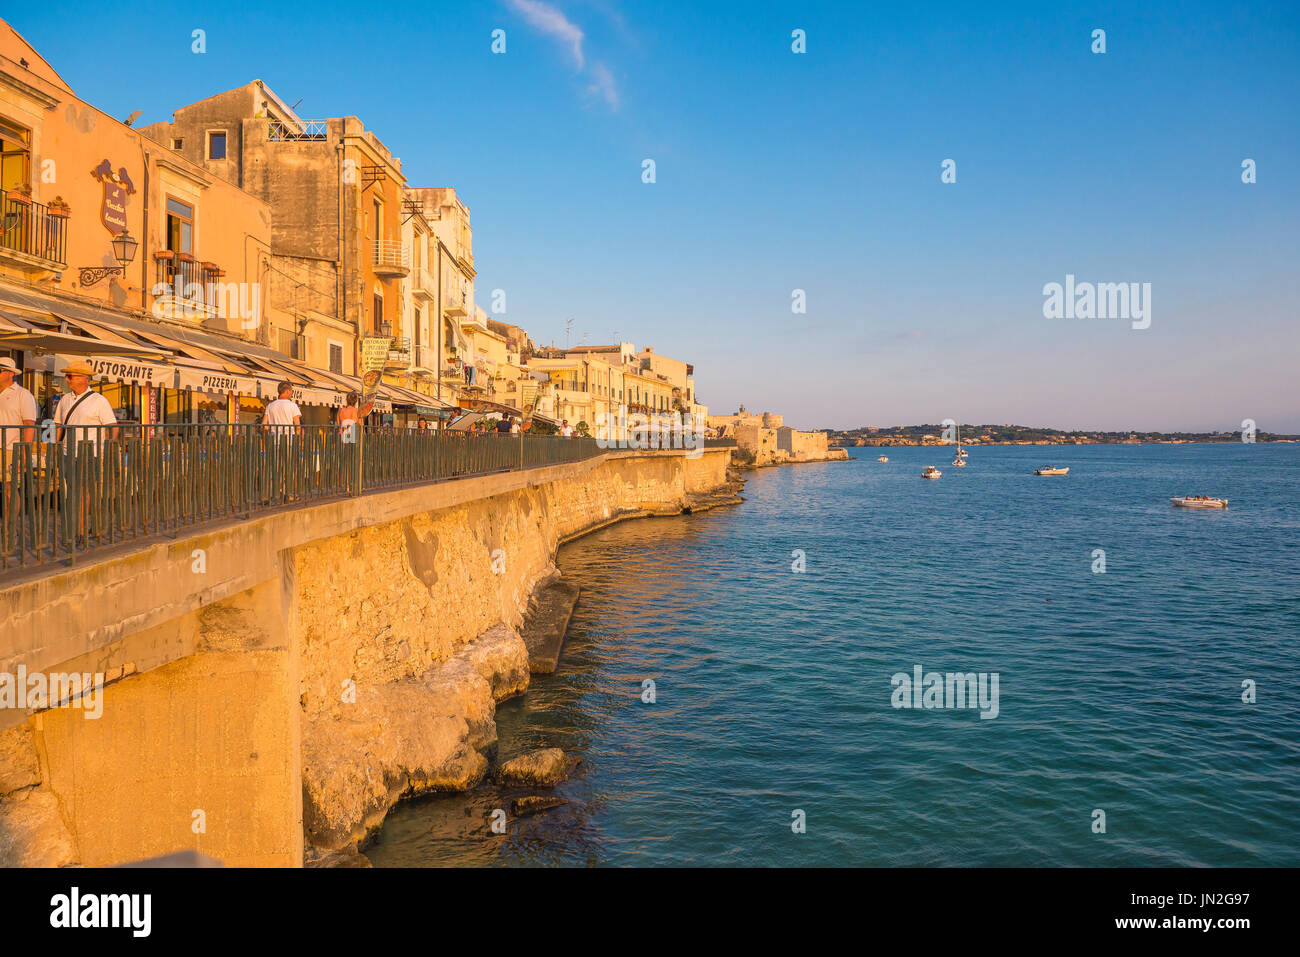 Sicily east coast, view of the sea wall at Ortigia  near Syracuse in Sicily. - Stock Image